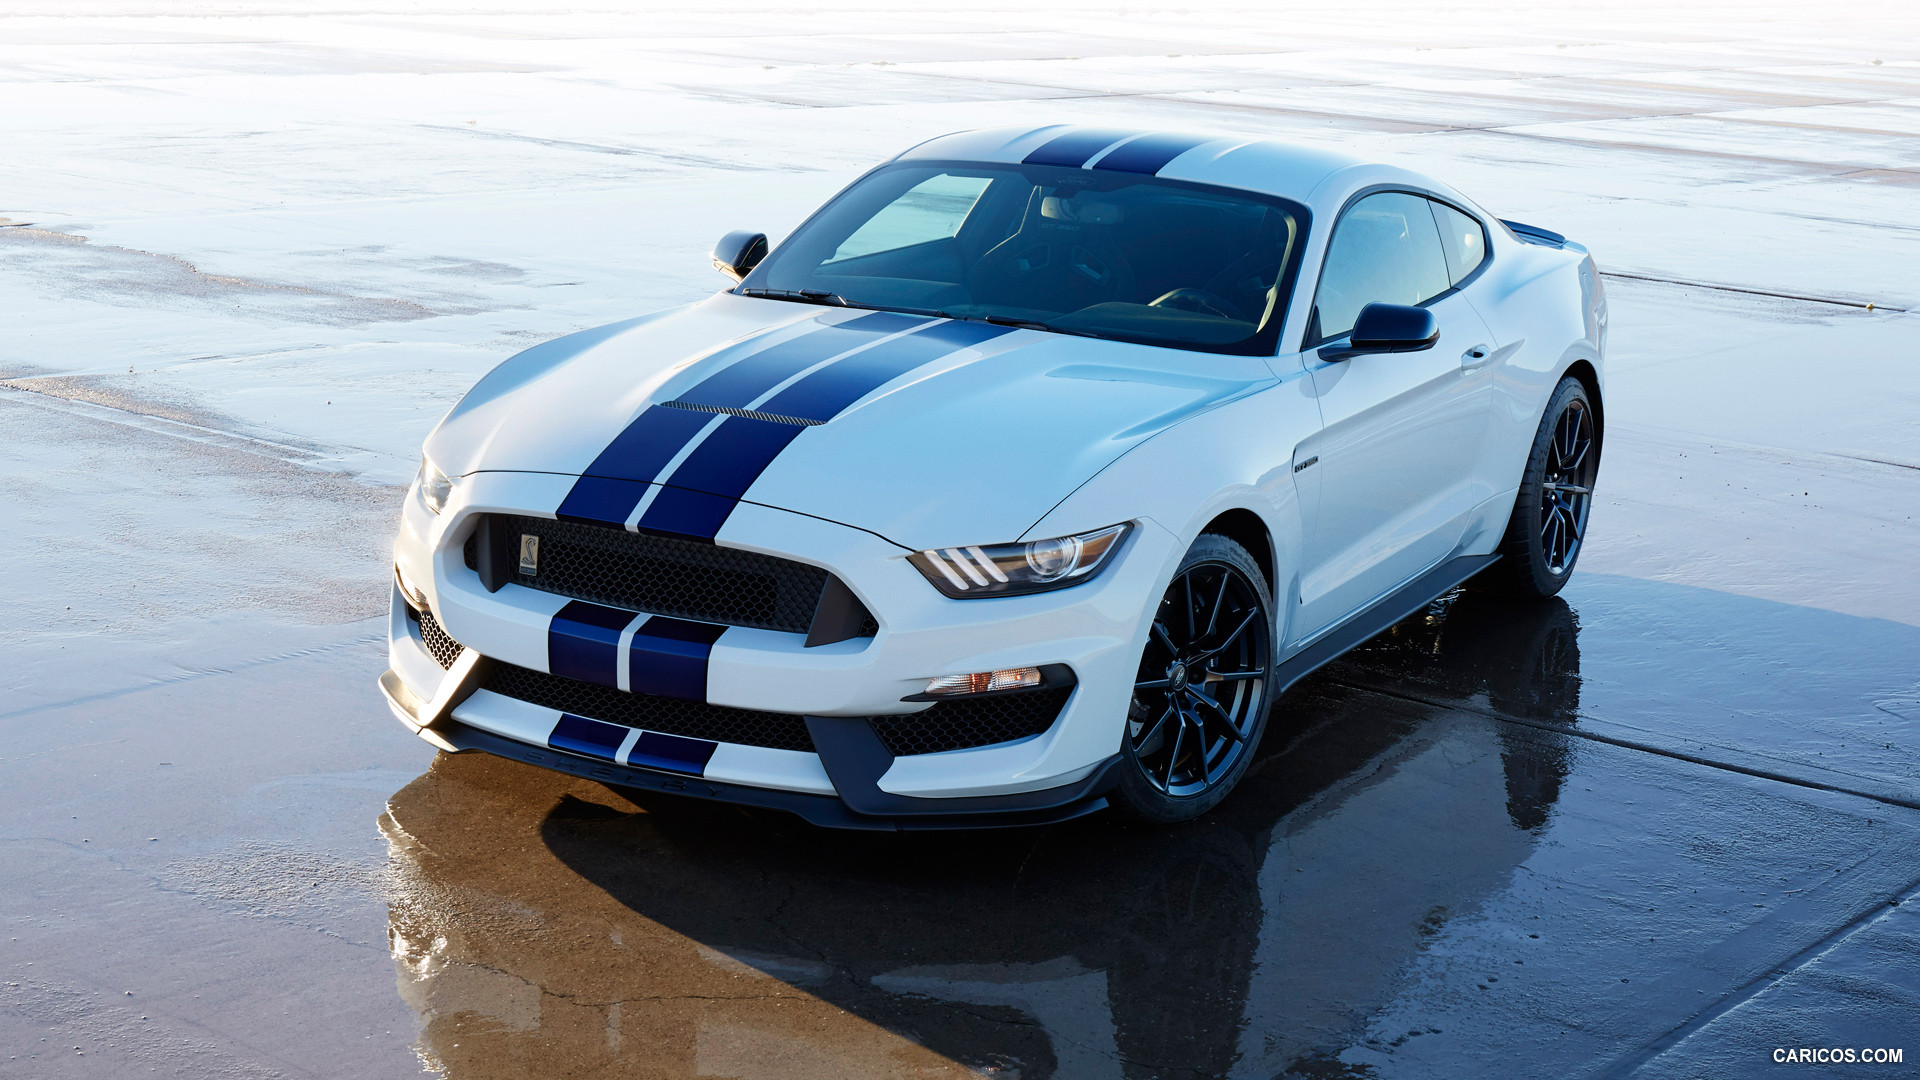 29 Ford Shelby Gt350 Wallpapers On Wallpapersafari